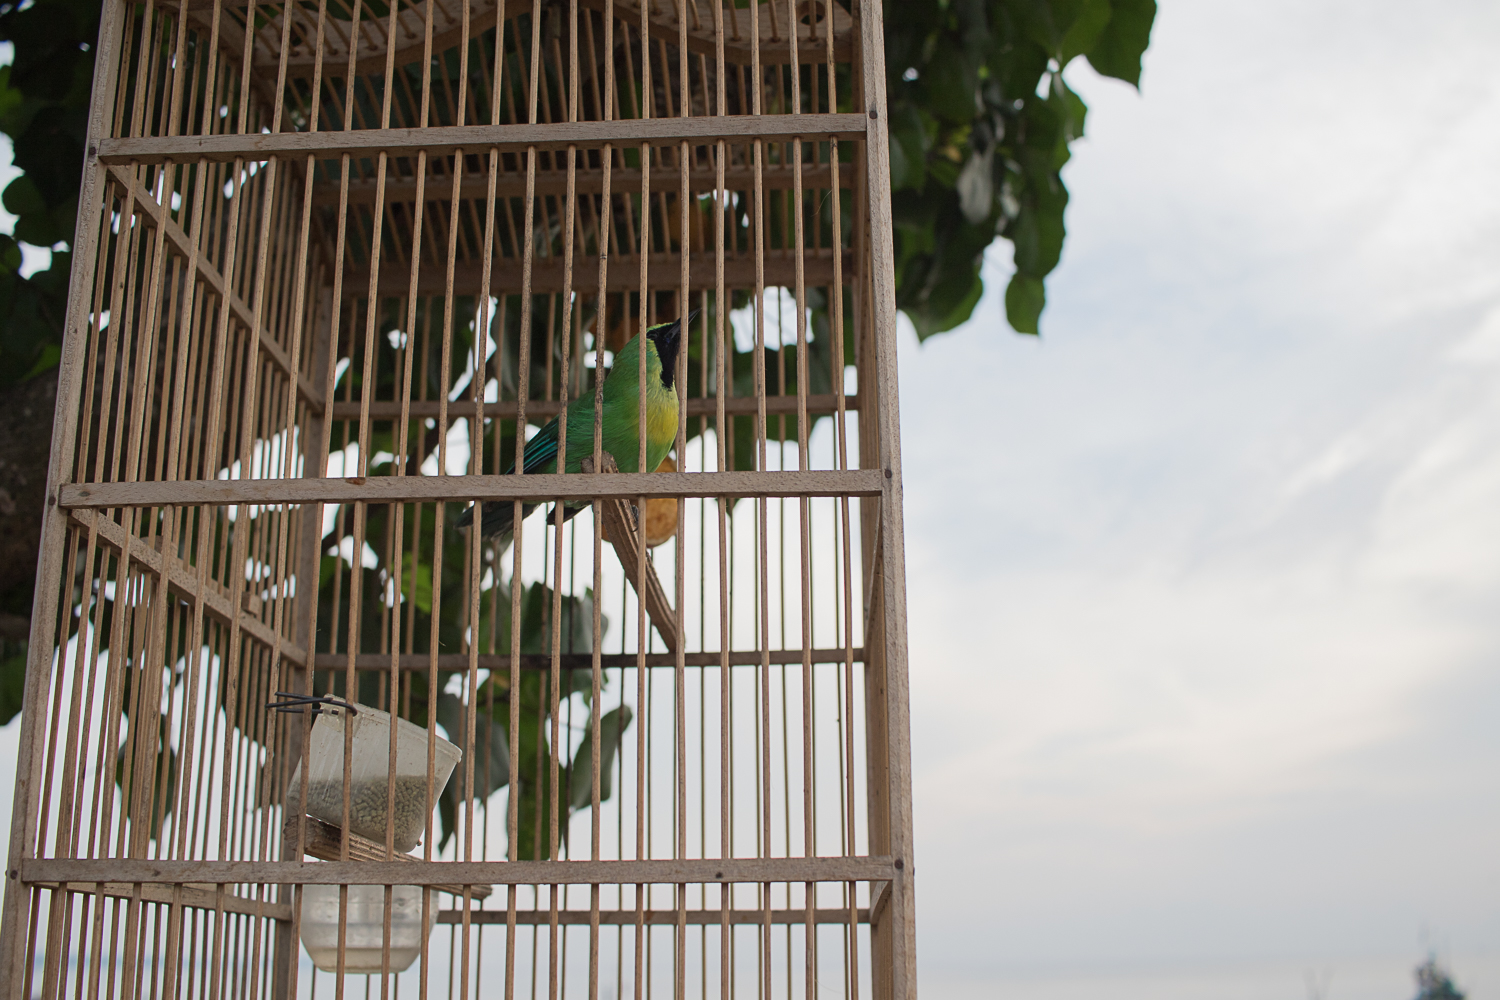 Many homes and businesses have caged birds to bring luck. Harvested right from the forest!